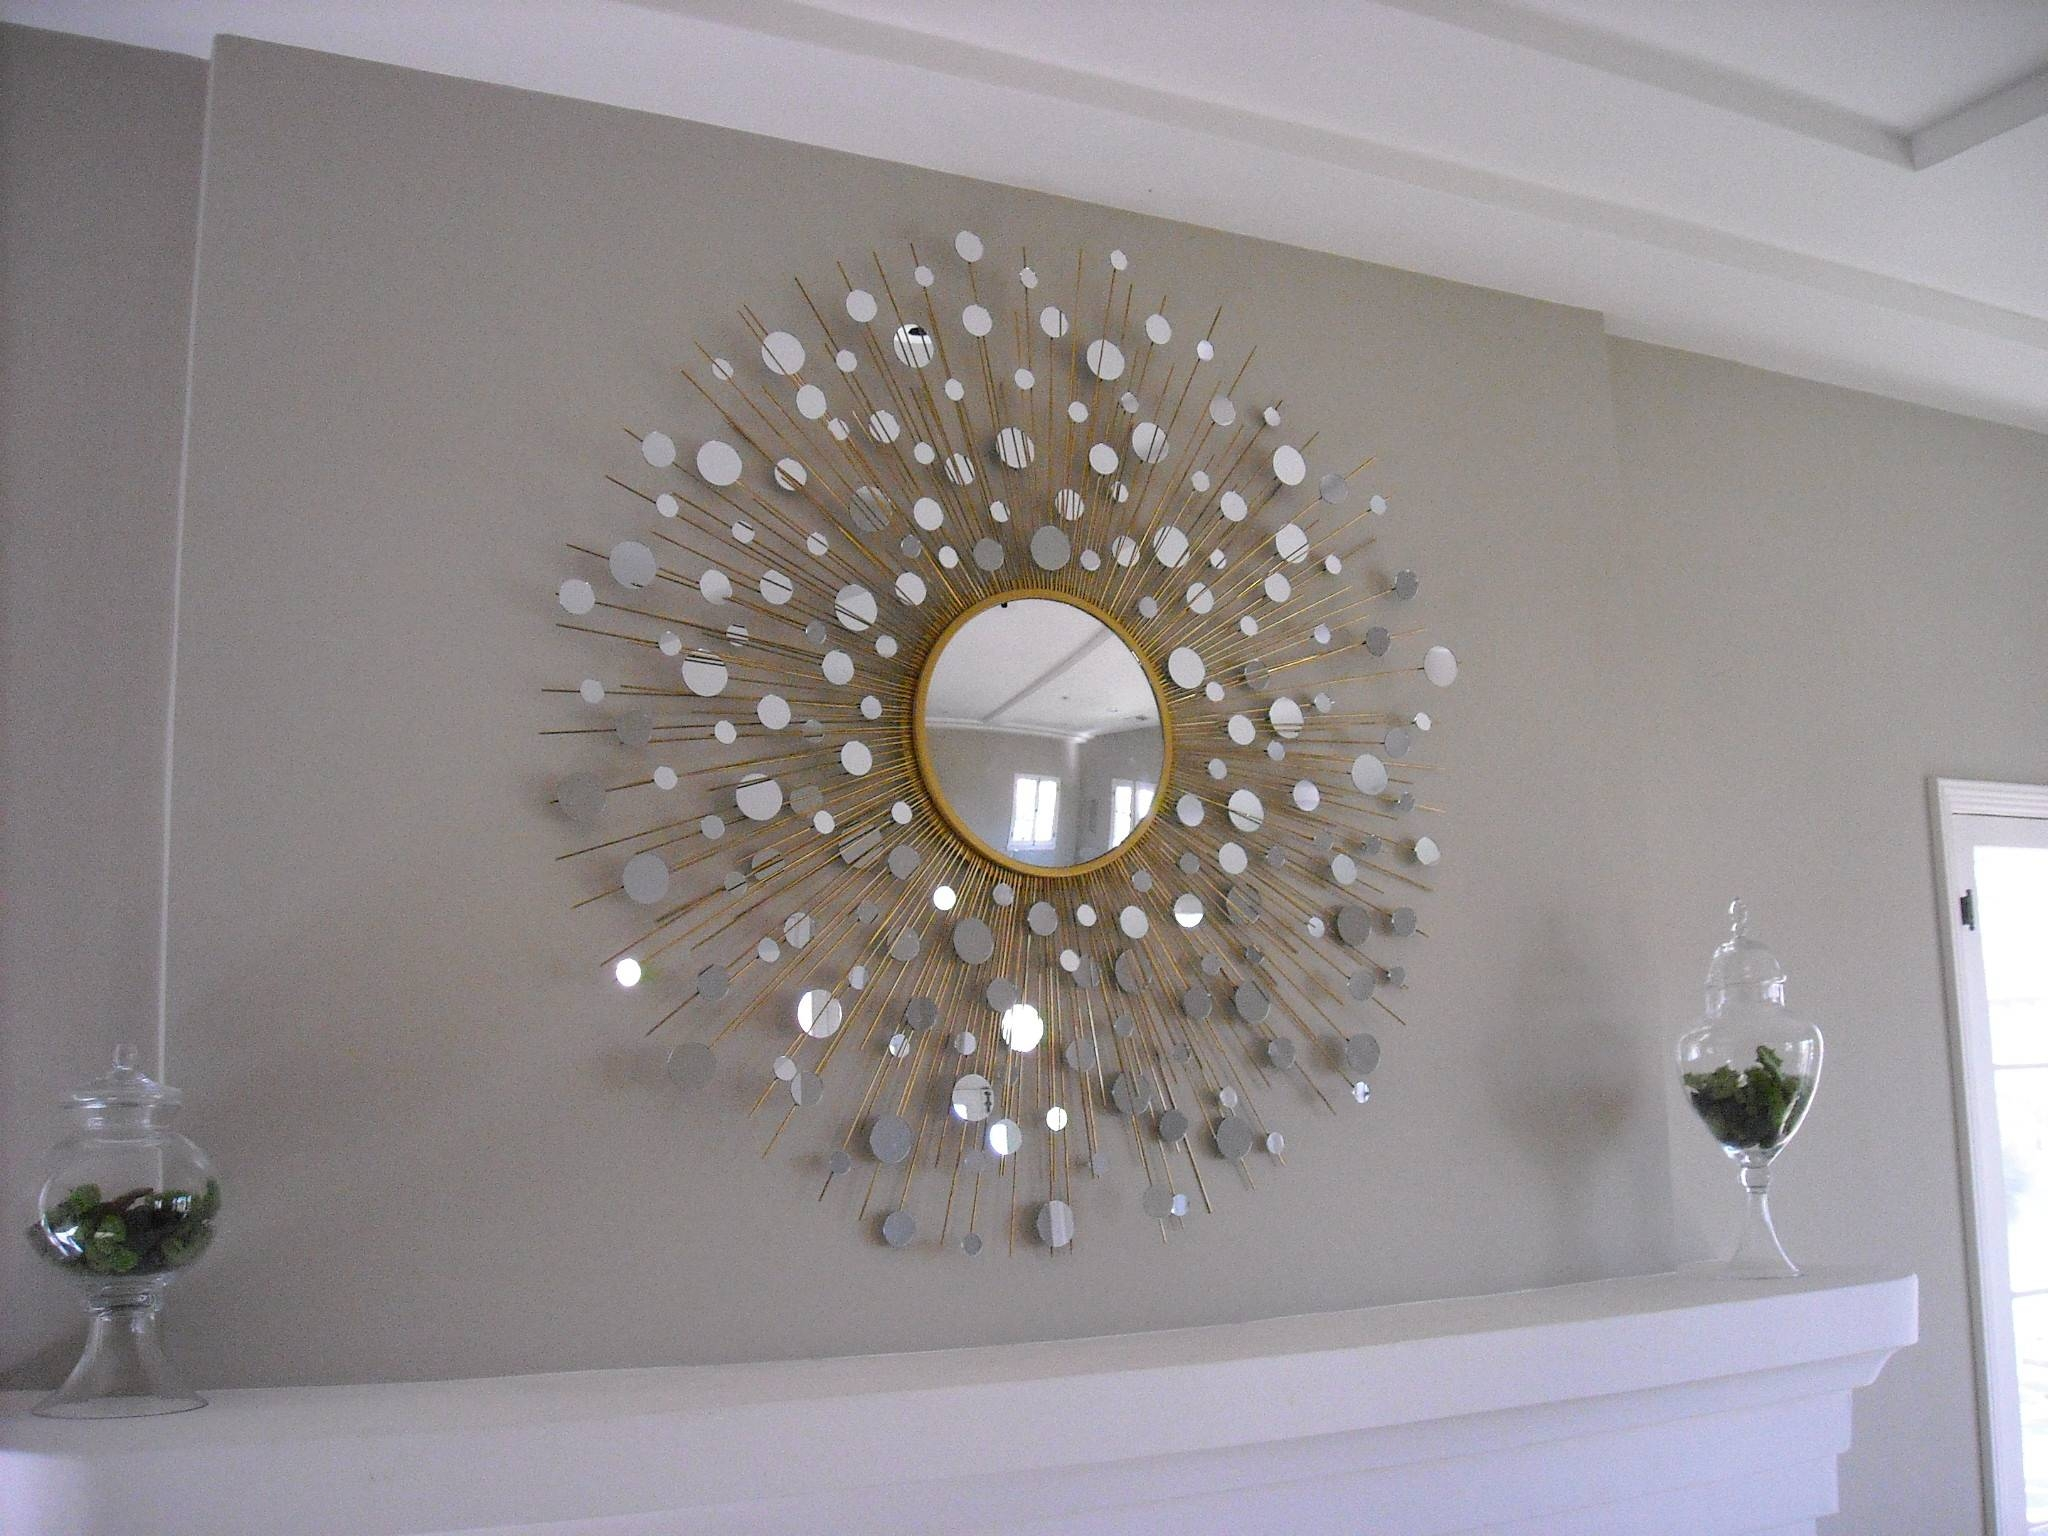 Bedroom : Engaging In Search Of — Starburst Mirrors ~ Krrb Blog Pertaining To Most Current Diy Mirror Wall Art (View 3 of 20)